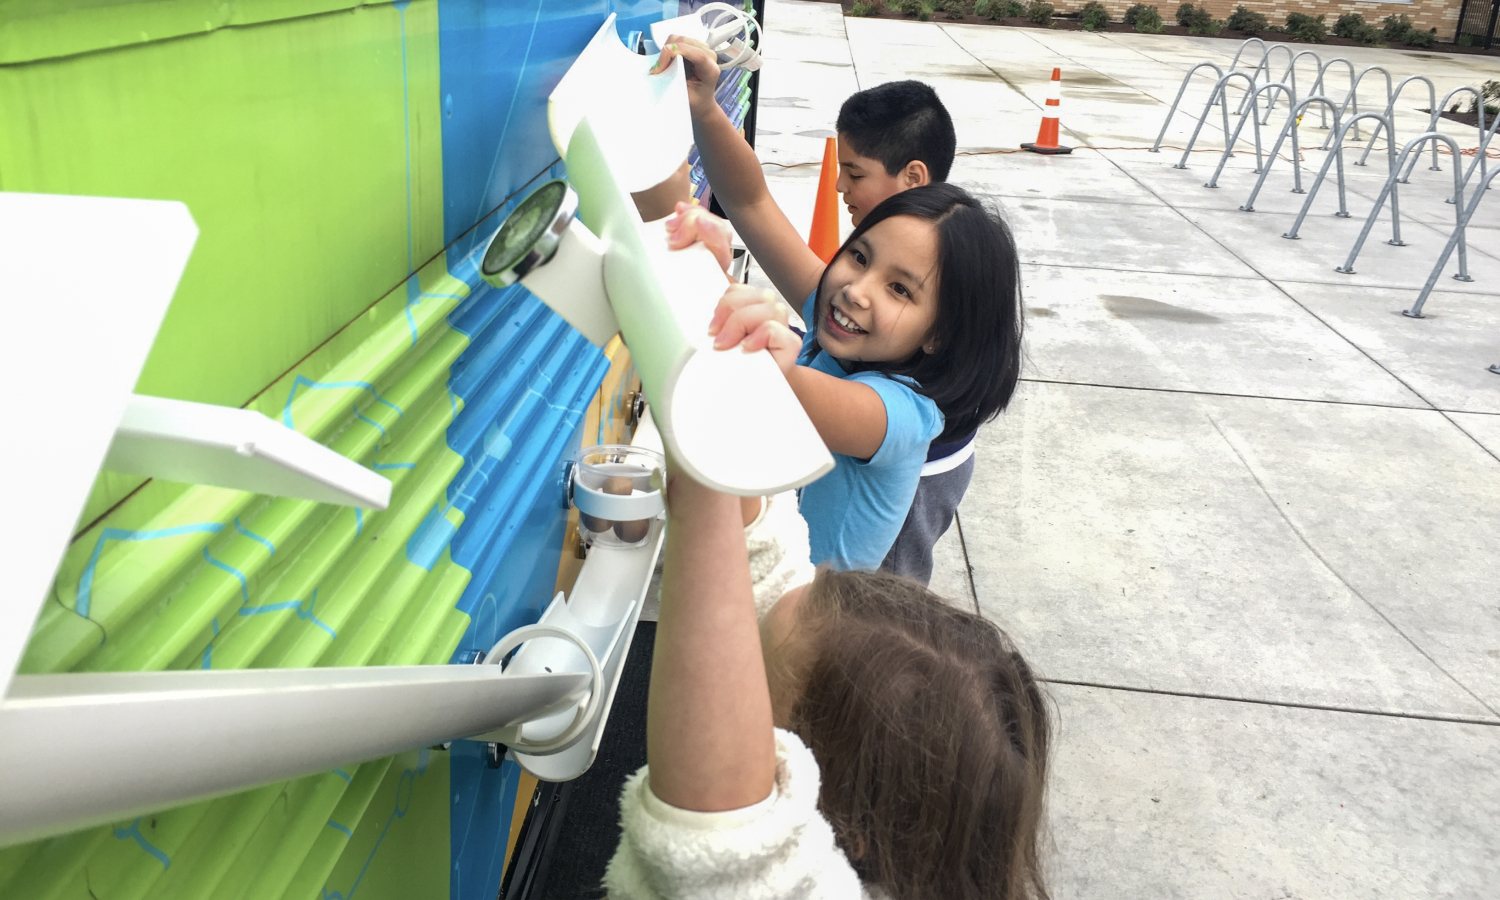 Kids at Beaverton SD play on a future ready bus